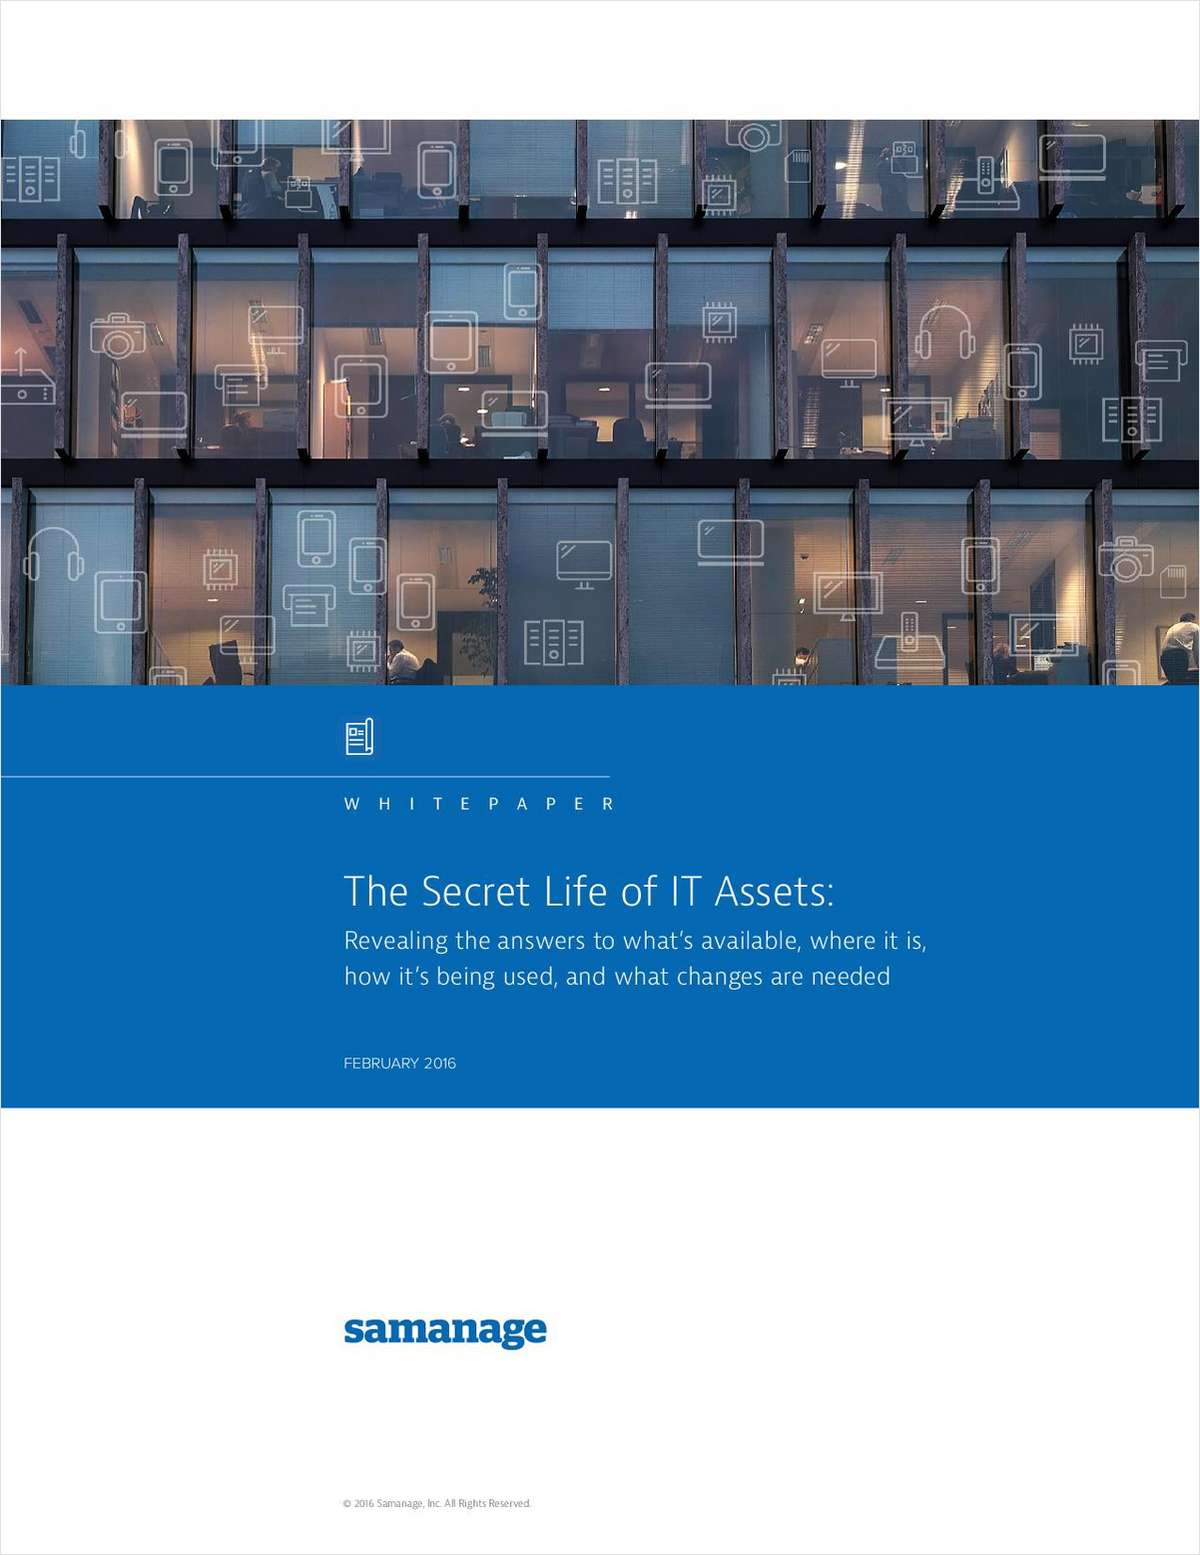 The Secret Life of IT Assets